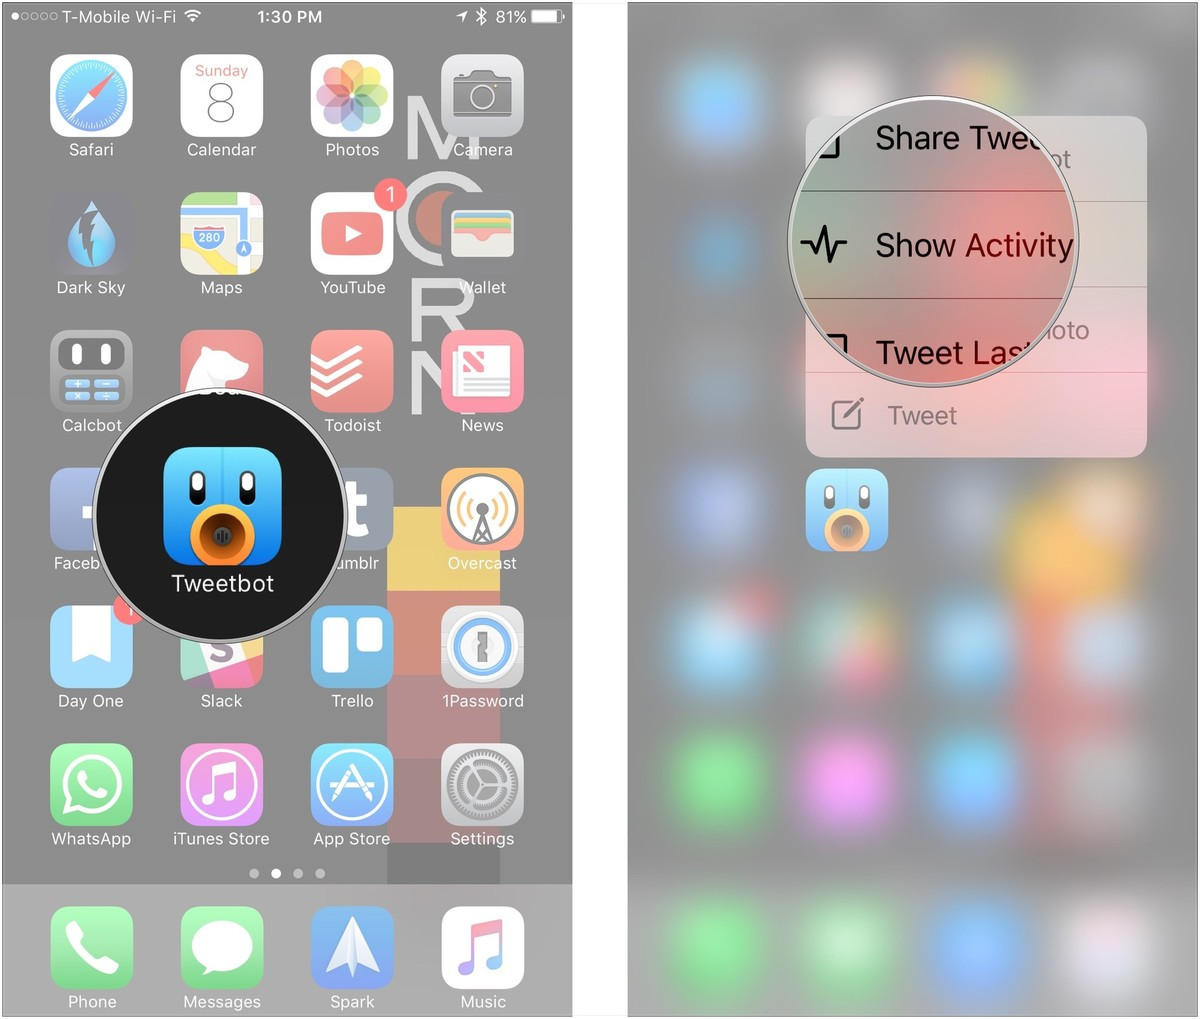 10 Shortcuts Every iPhone and iPod User Need to Know - Image 8